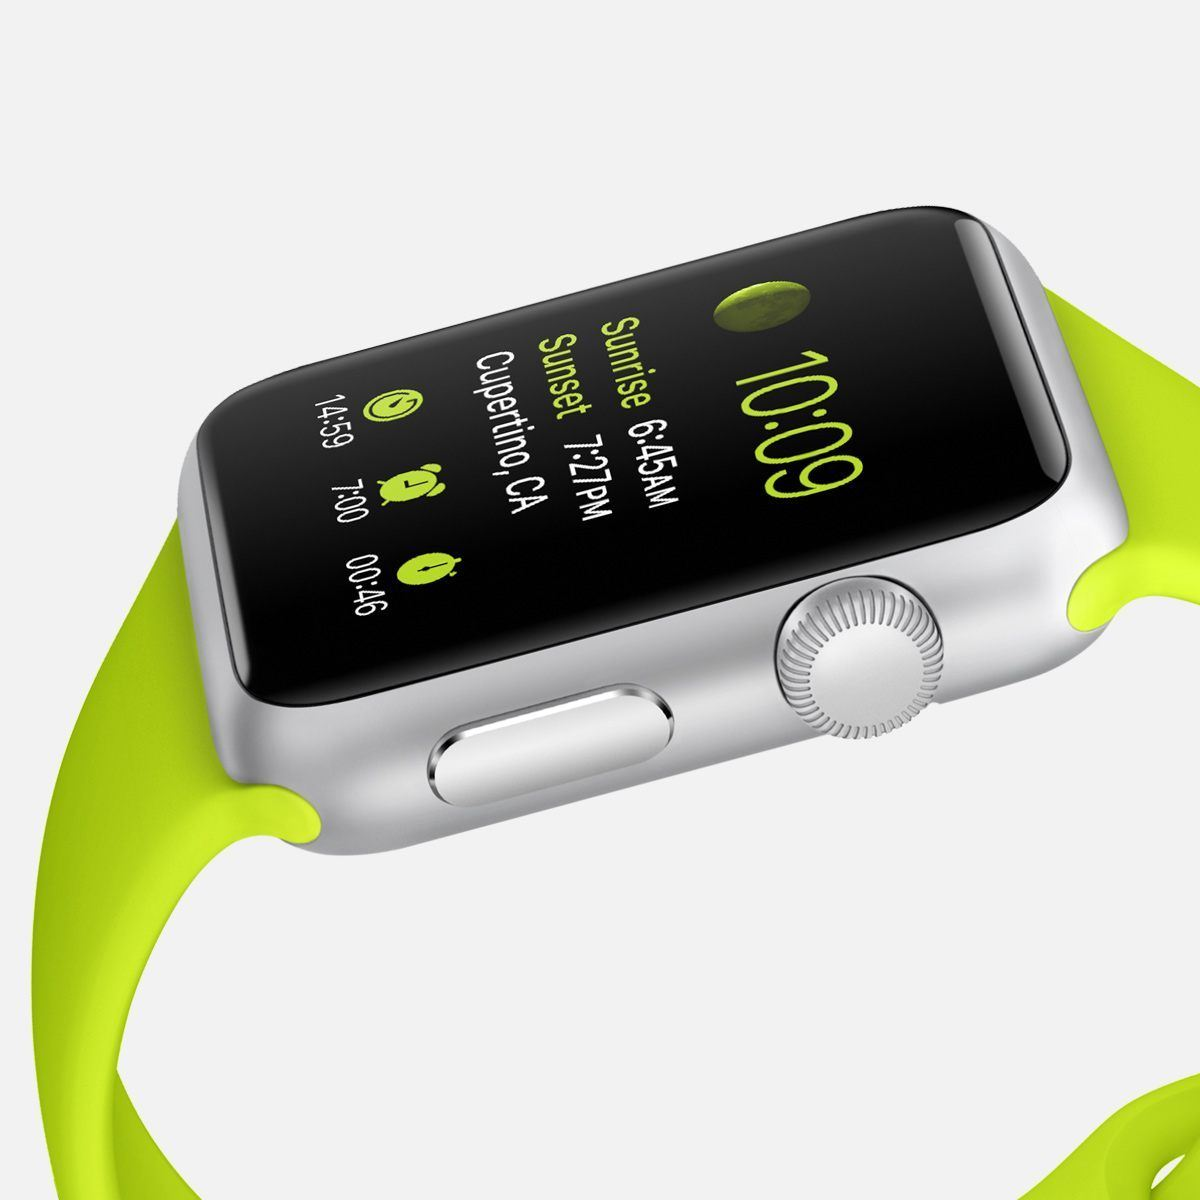 Apple Watch: The Ultimate Device For Your Healthy Life